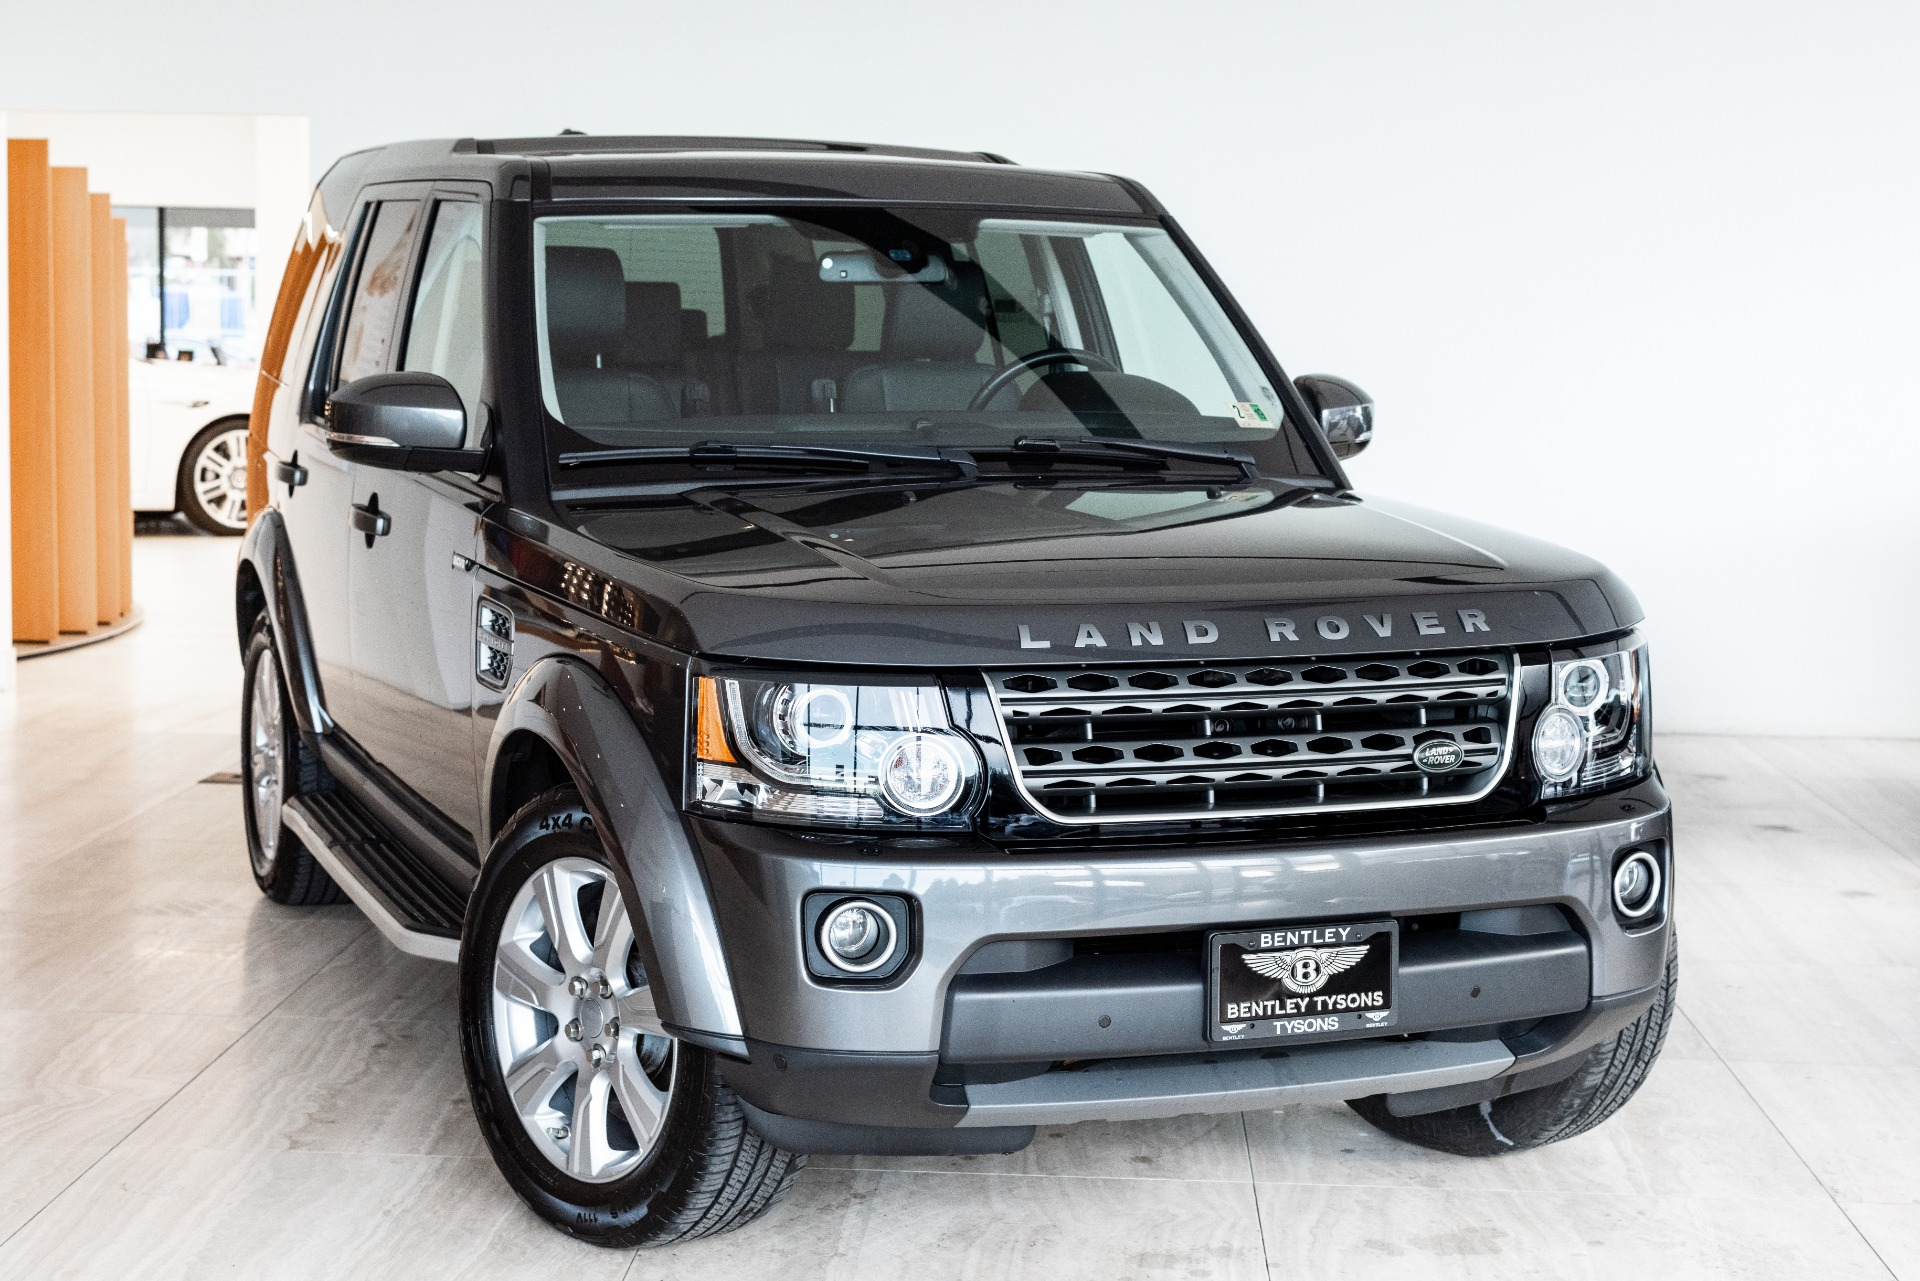 2016 Land Rover Lr4 Hse Stock P805039 For Sale Near